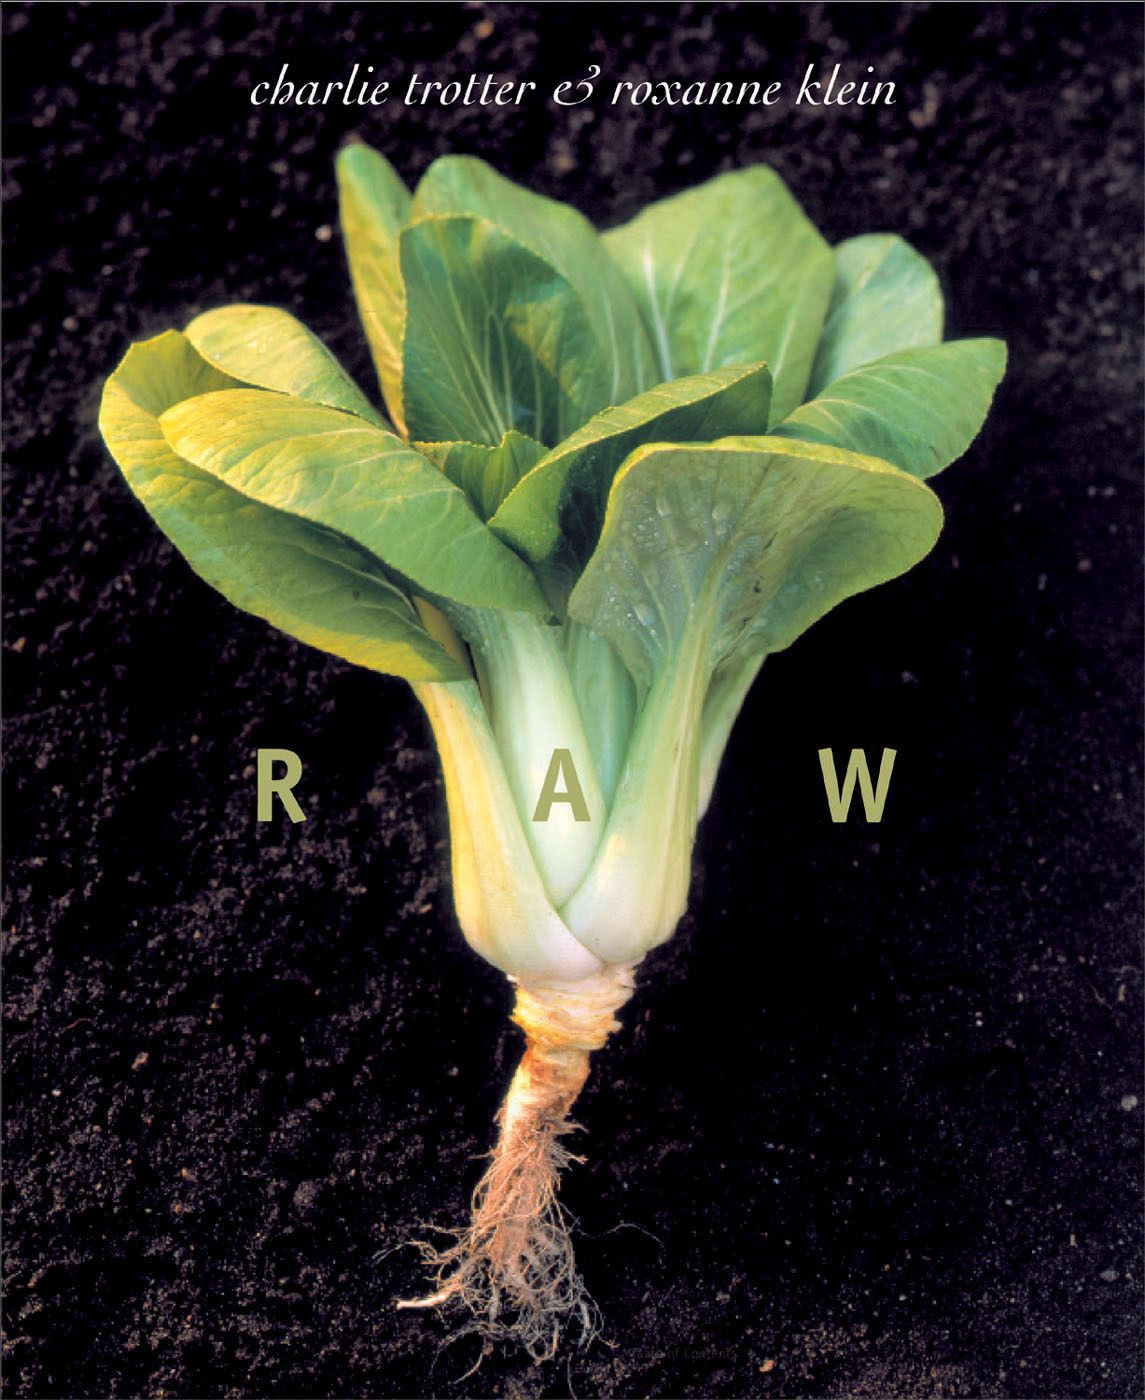 """""""Raw"""" by Charlie Trotter and Roxanne Klein is a """"cookbook'' with a difference, since its purpose is to explain the techniques and offer plenty of recipes for preparing food without cooking it conventionally."""